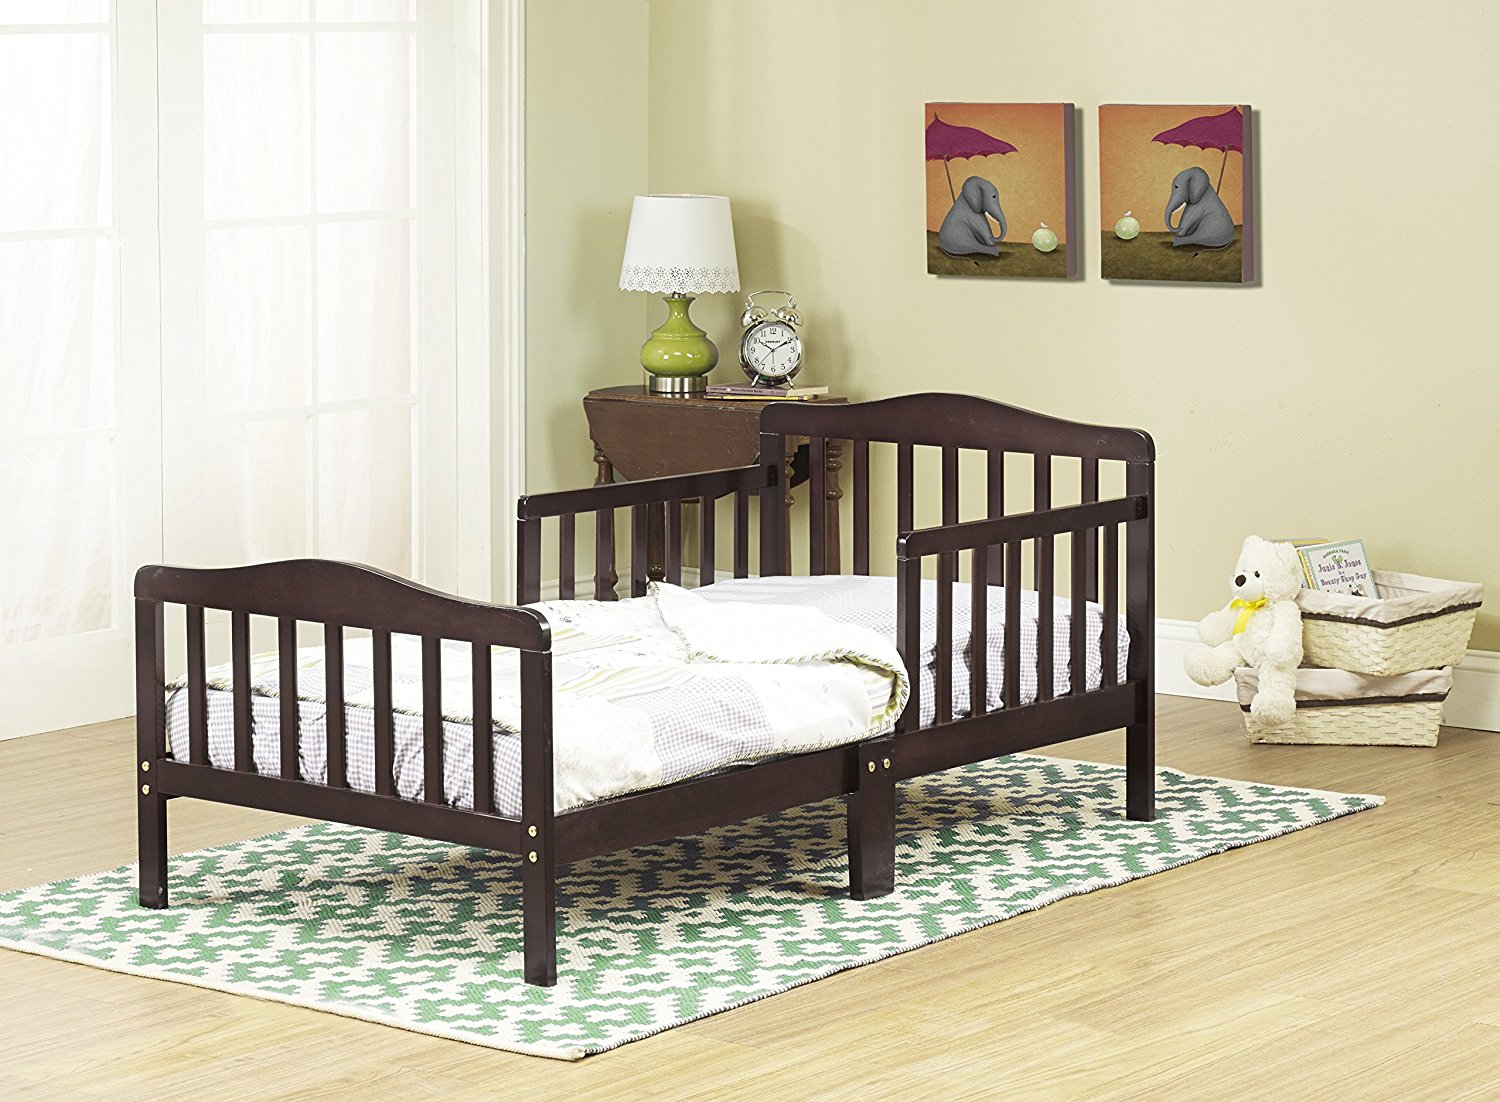 Top 6 Best Toddler Beds In 2018 Reviews And Comparison